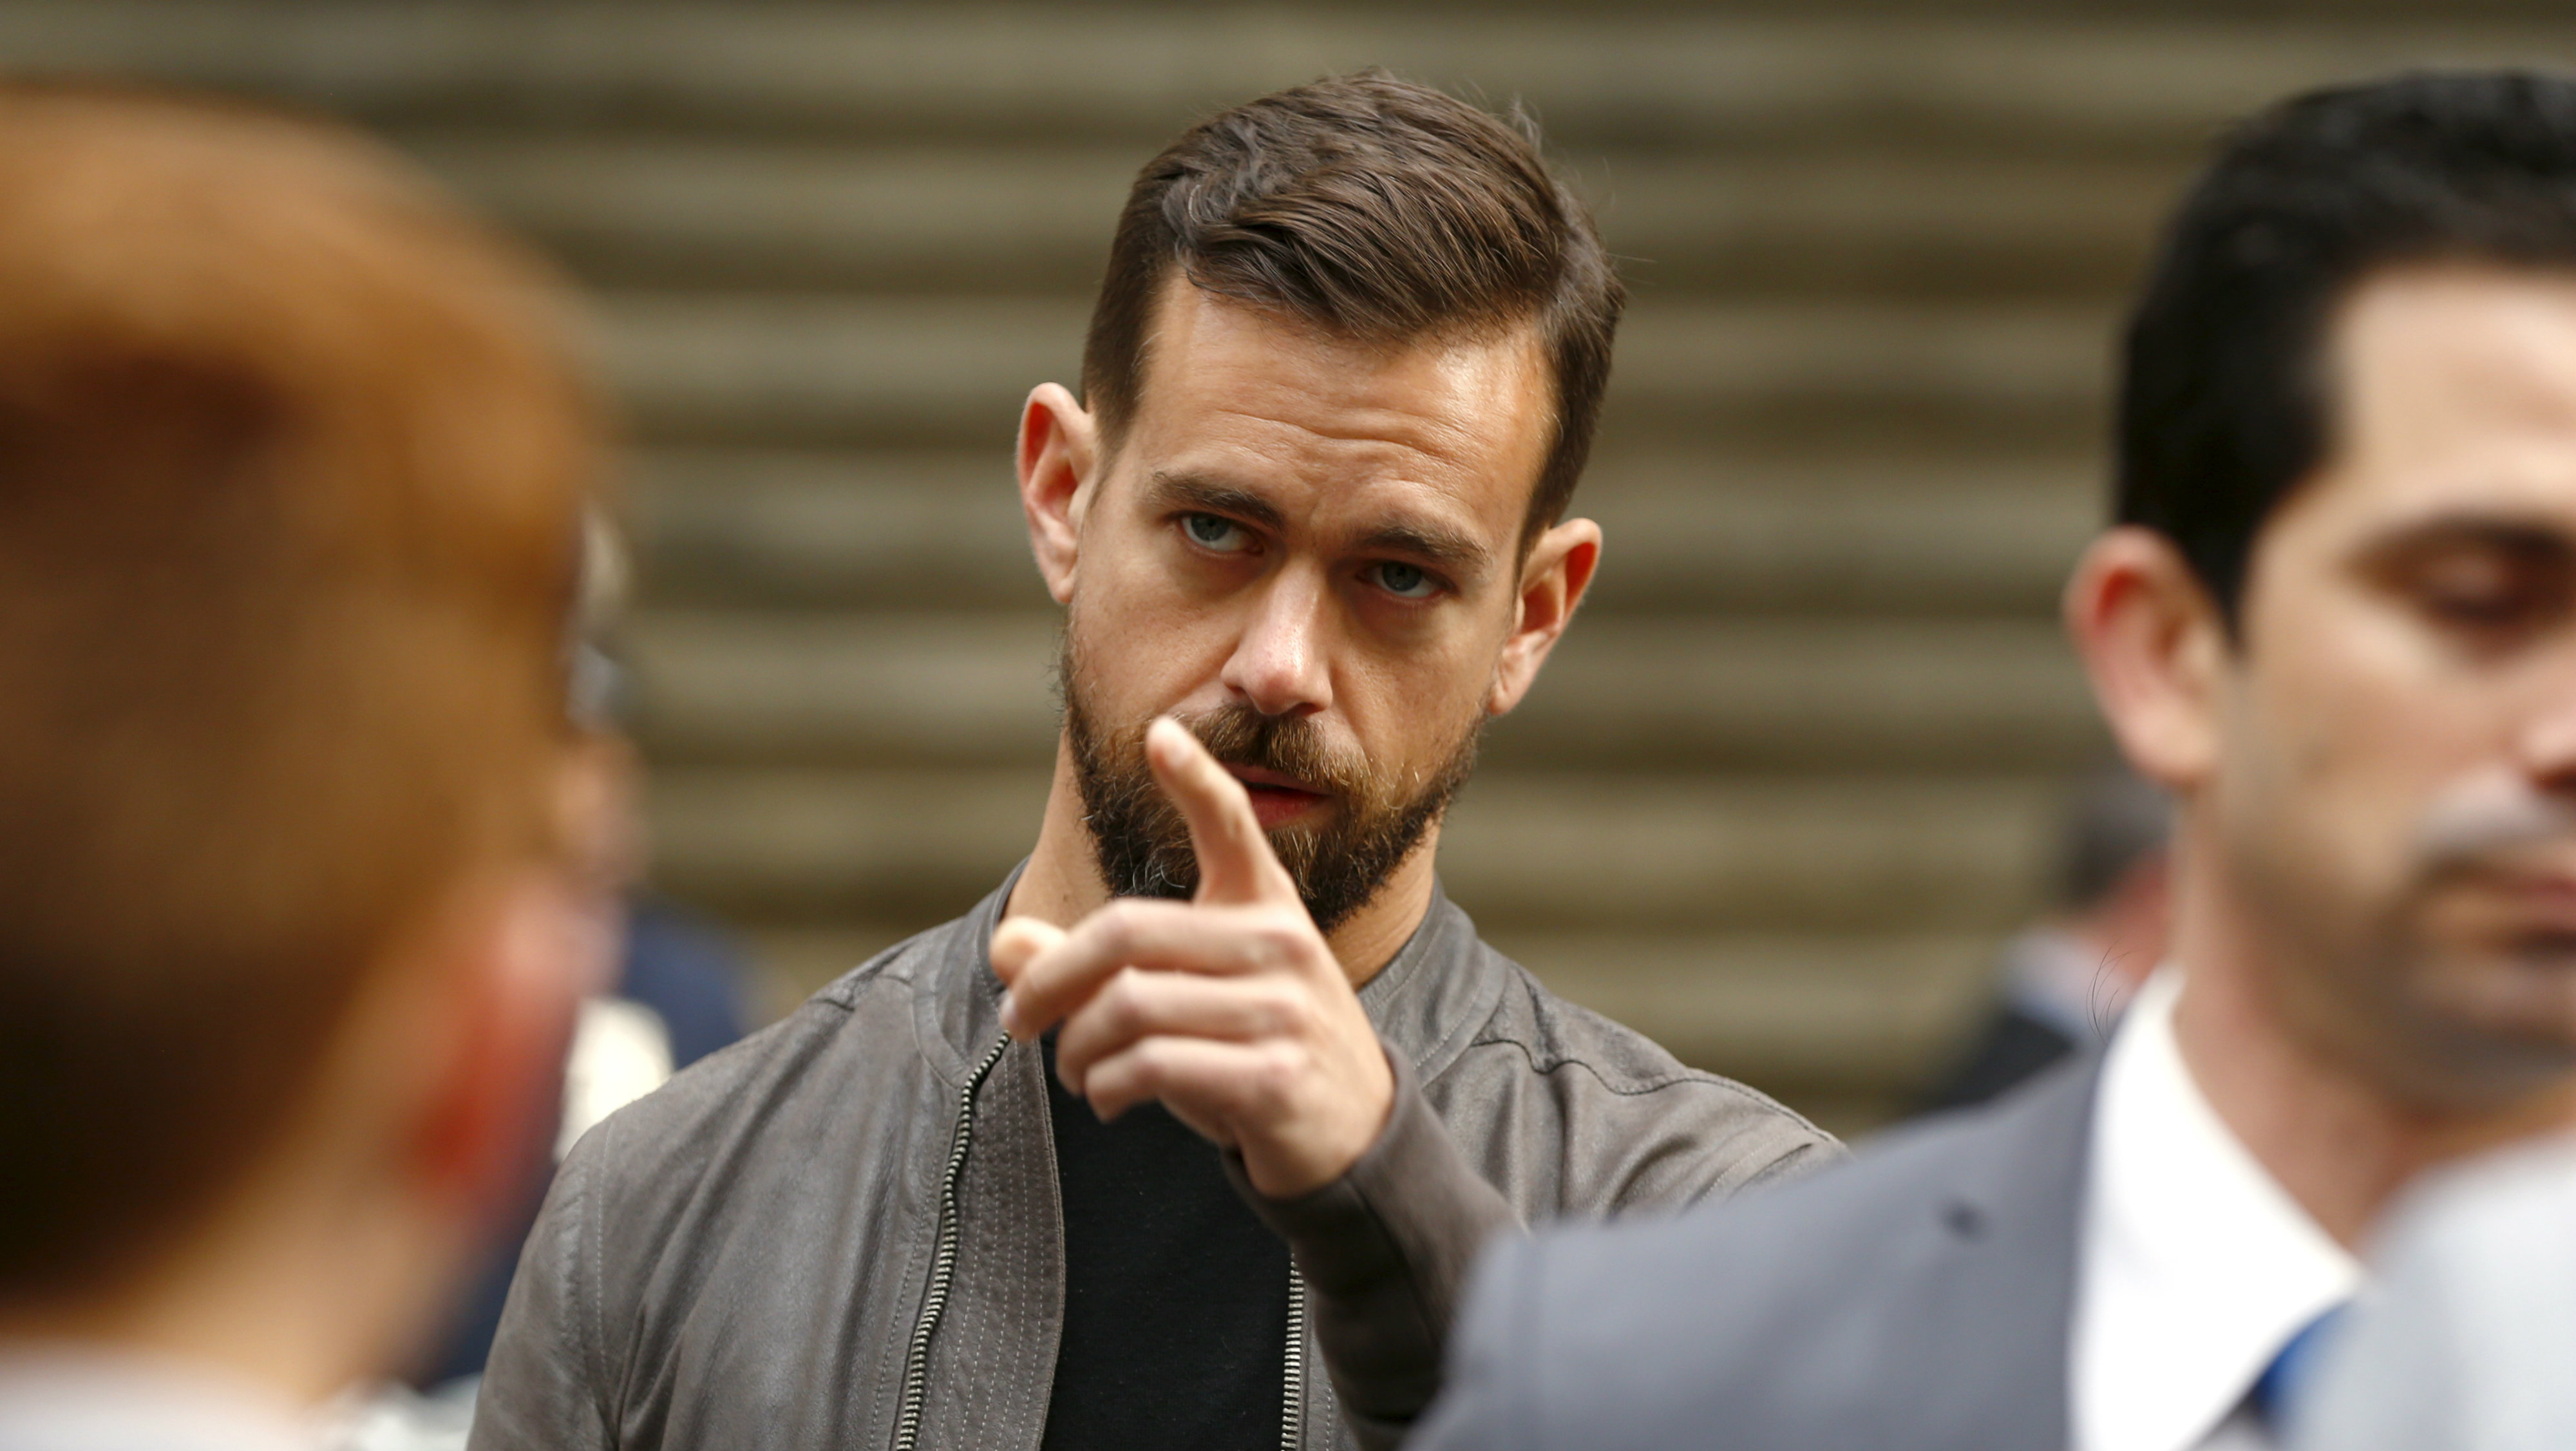 Jack Dorsey, CEO of Square and CEO of Twitter, arrives at the New York Stock Exchange for the IPO of Square Inc., in New York November 19, 2015. Square Inc priced shares at $9 for its initial public offering, about 25 percent less than it had hoped, as it struggled to win over investors skeptical about its business and valuation before trading begins on Thursday